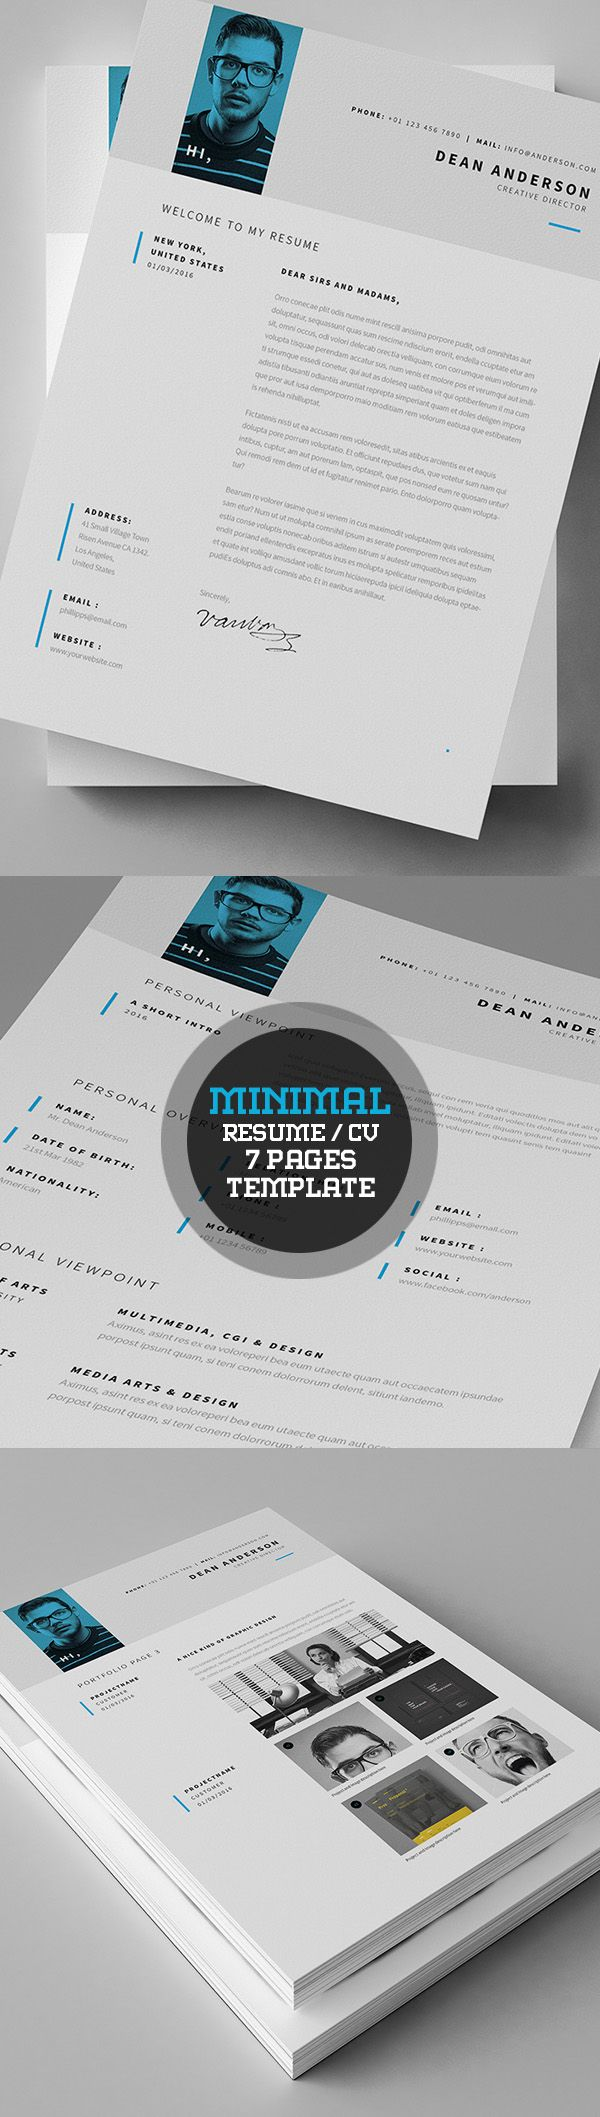 tips for completing a resume template resume service tips for completing 2020 census job applications my cv cv design template resume and